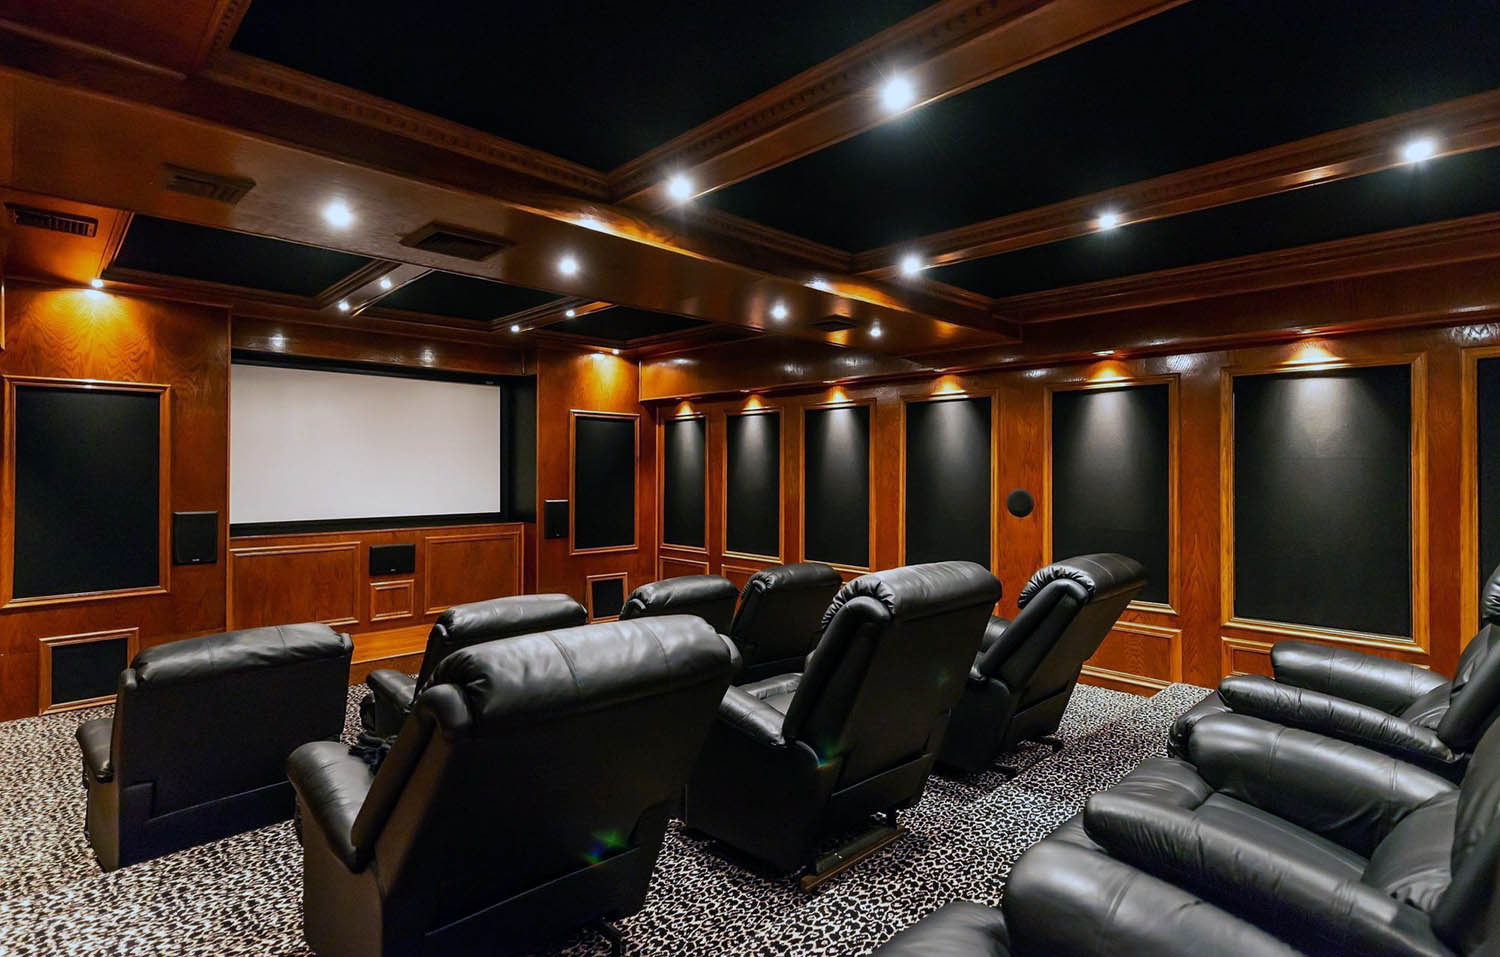 Home theatre room with all wood walls and wood ceiling. Black leather recliners.